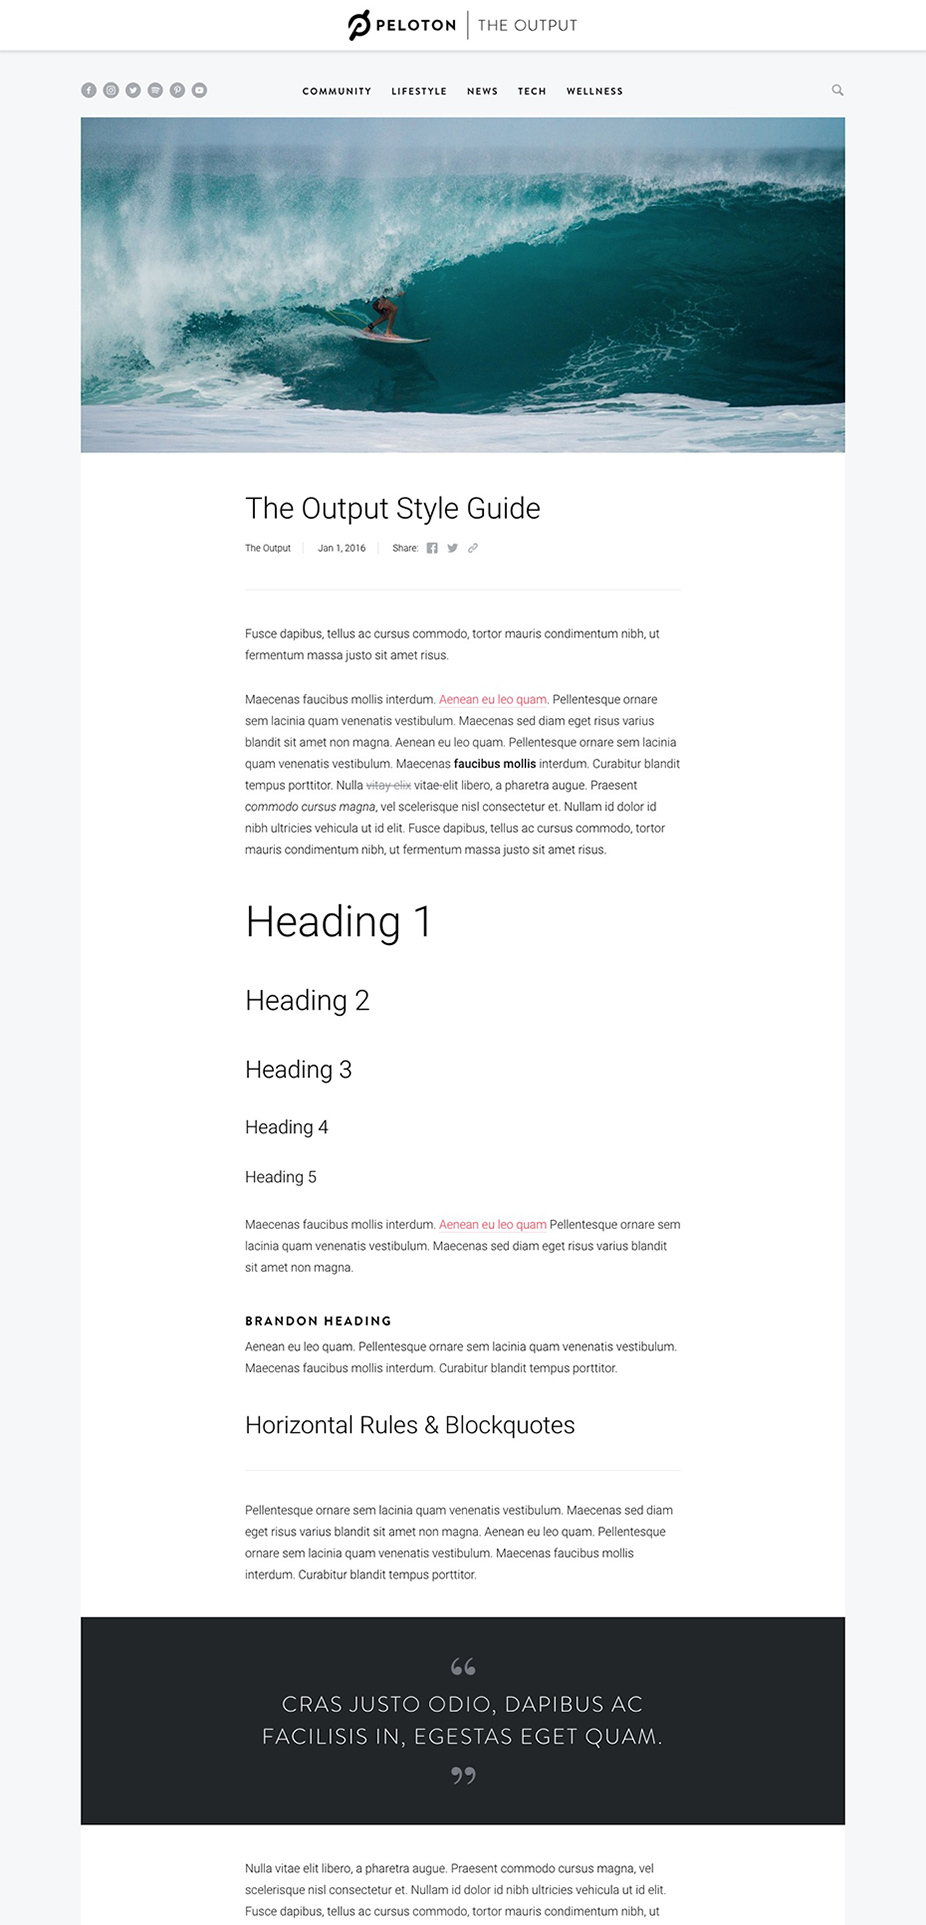 The Output Styleguide